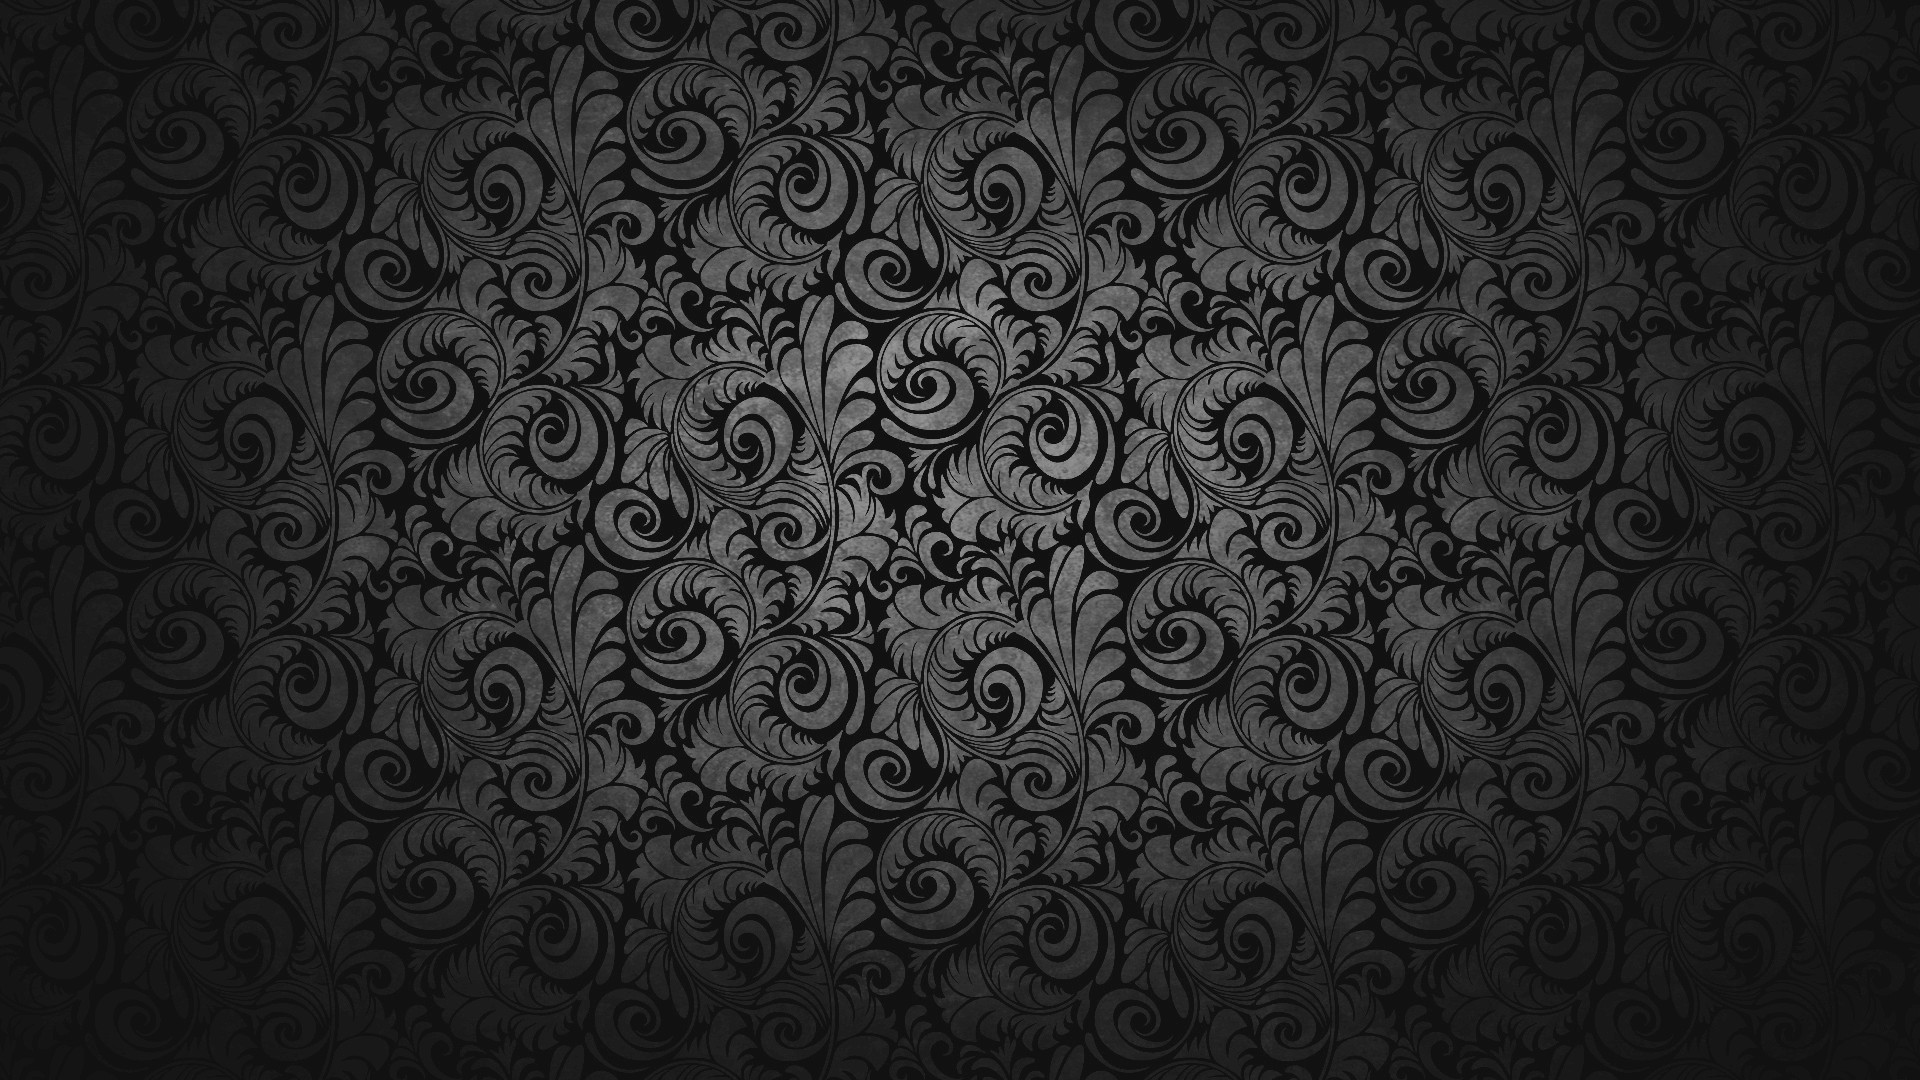 Free Download Background Wallpaper Abstract Dark 1920x1080